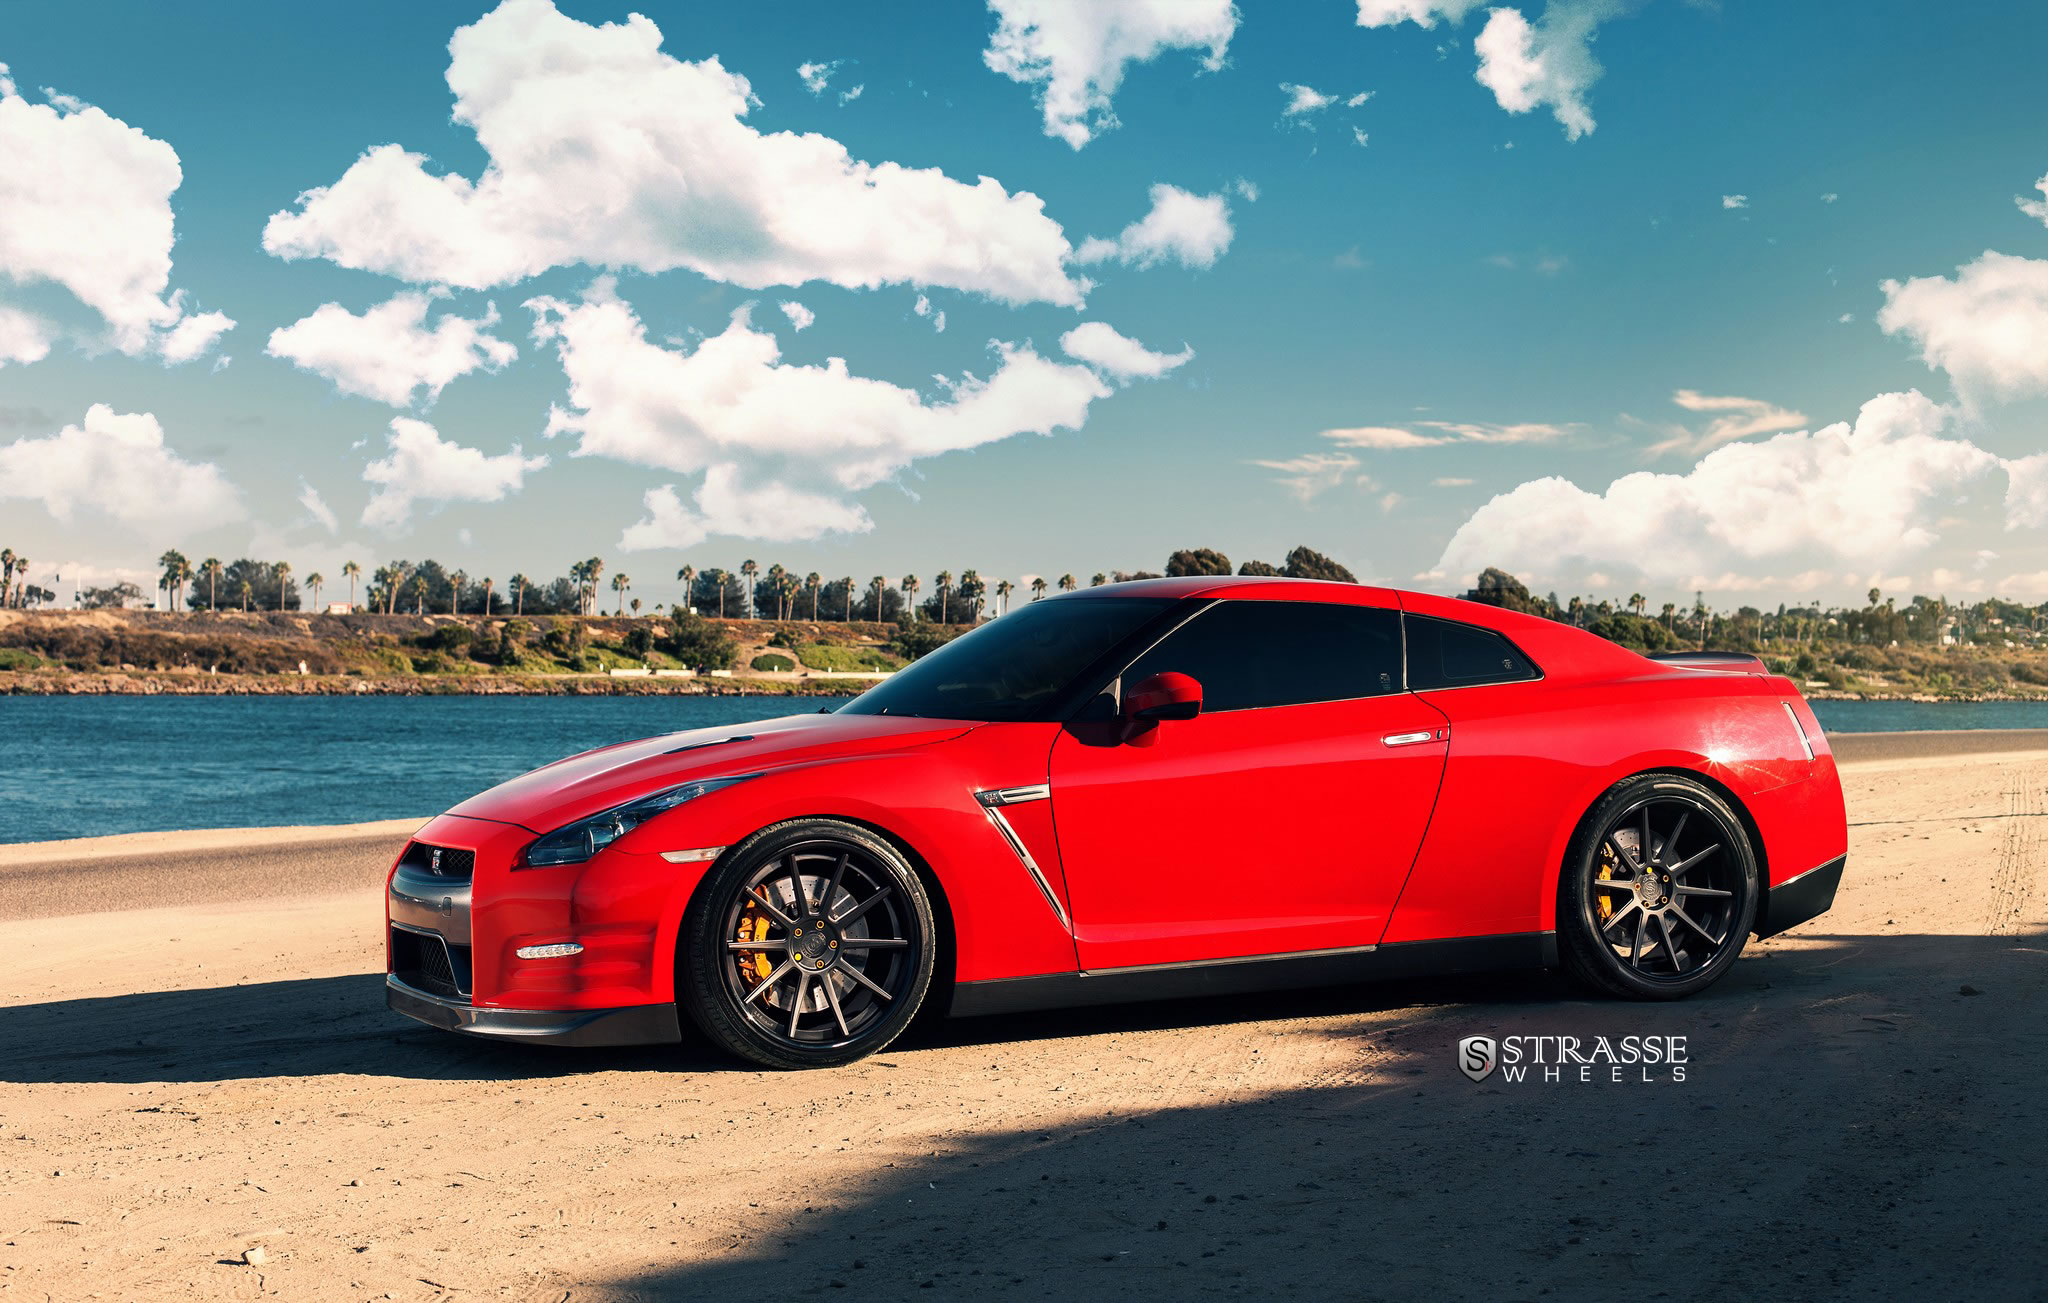 Nissan Gt R With Strasse Wheels Side Photo Vibrant Red